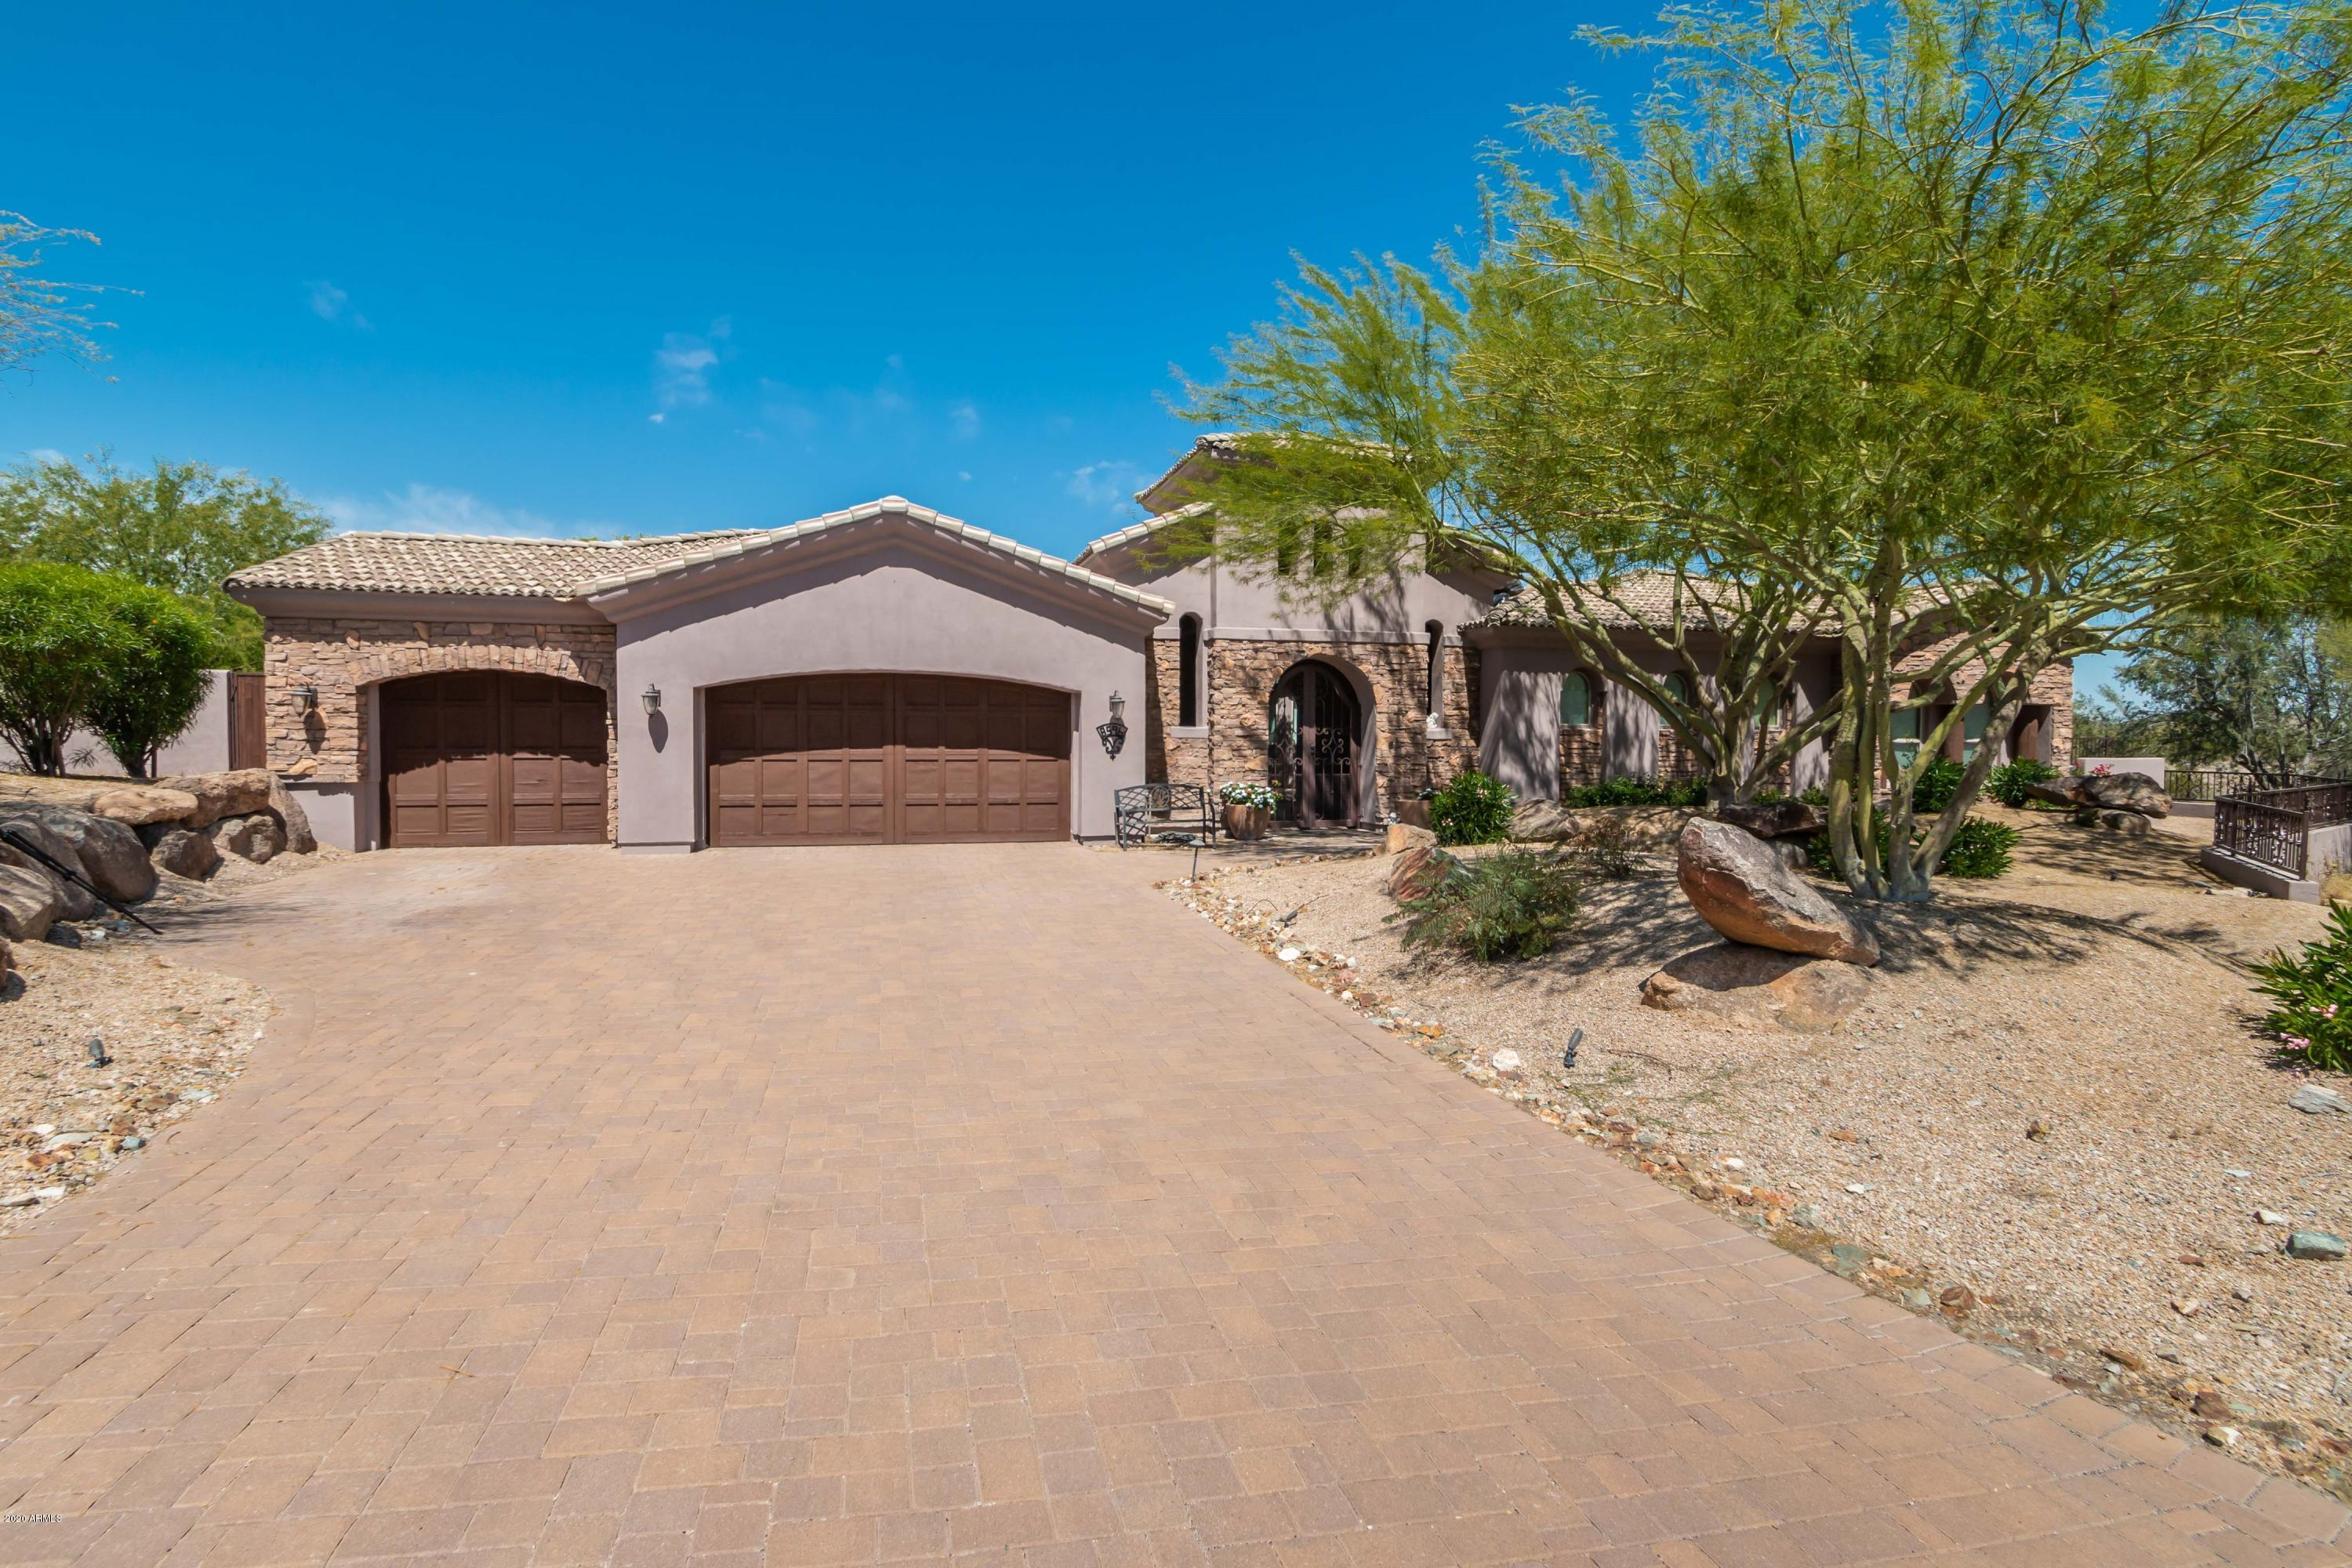 Photo of 8596 San Filipe Drive, Goodyear, AZ 85338